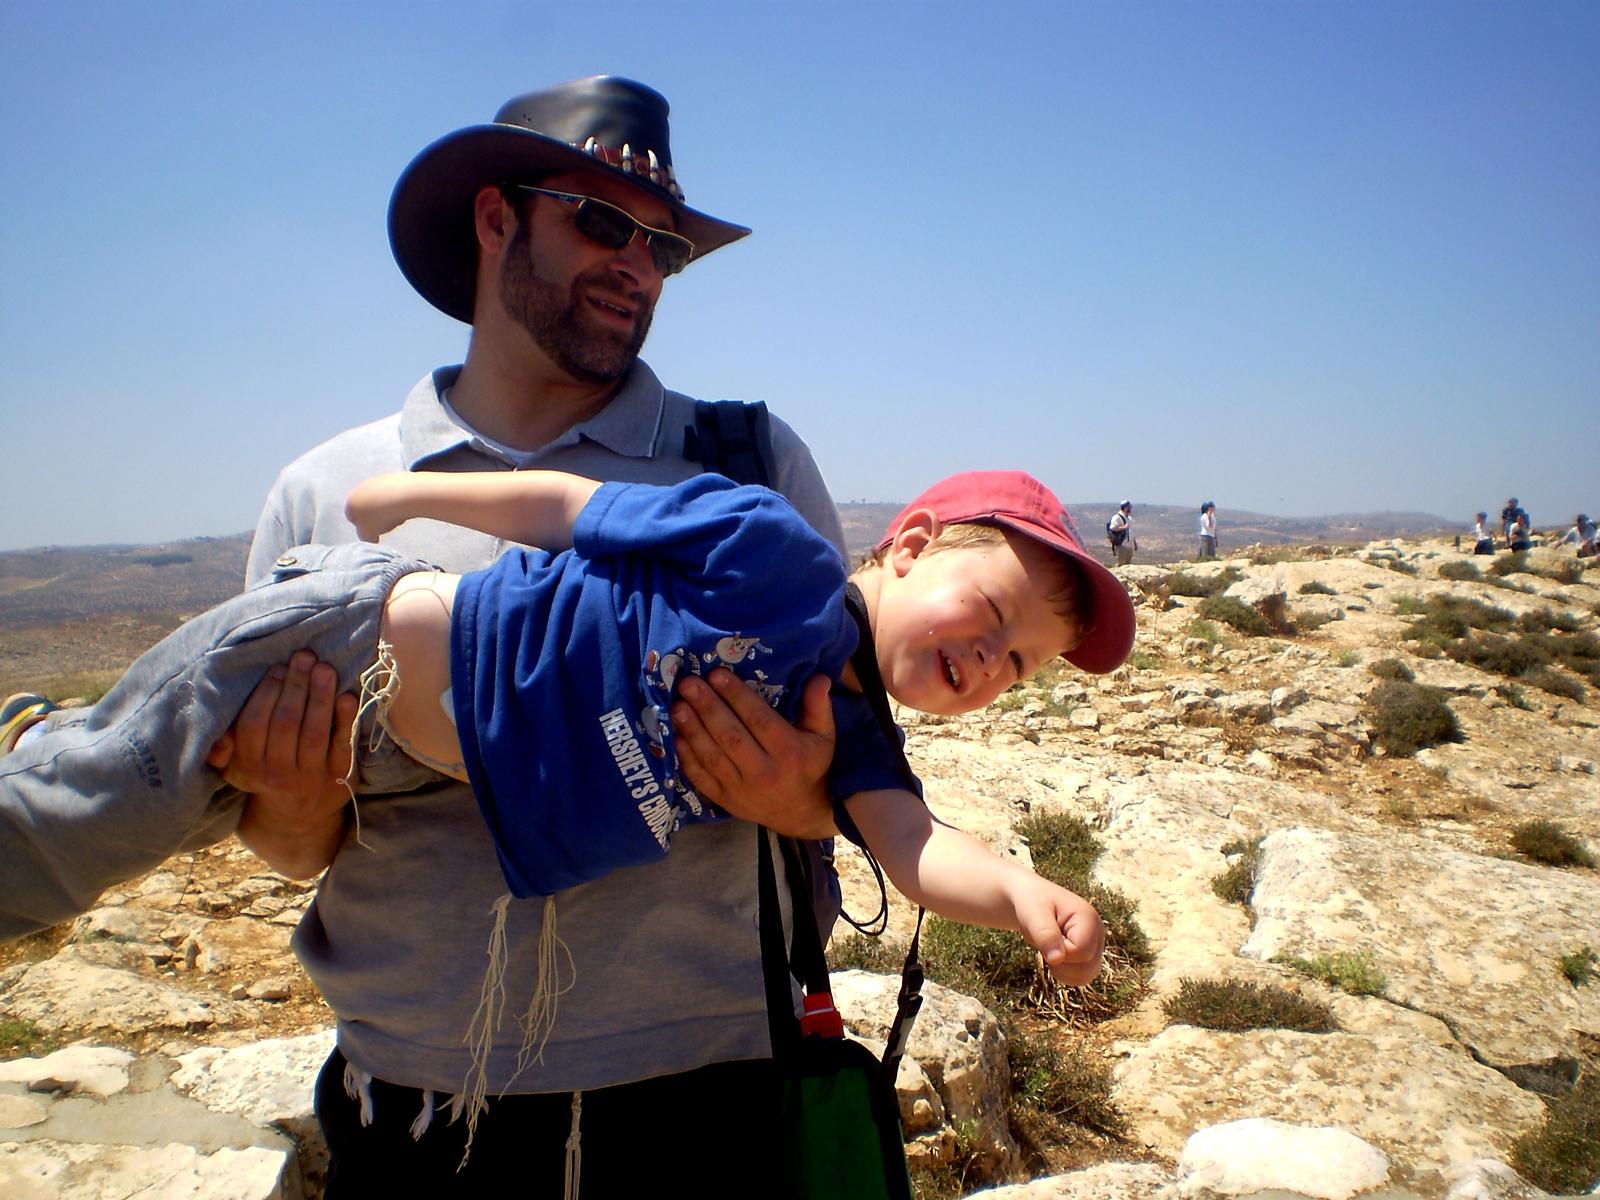 Dear Ari Fuld: I will carry on being a warrior on ...